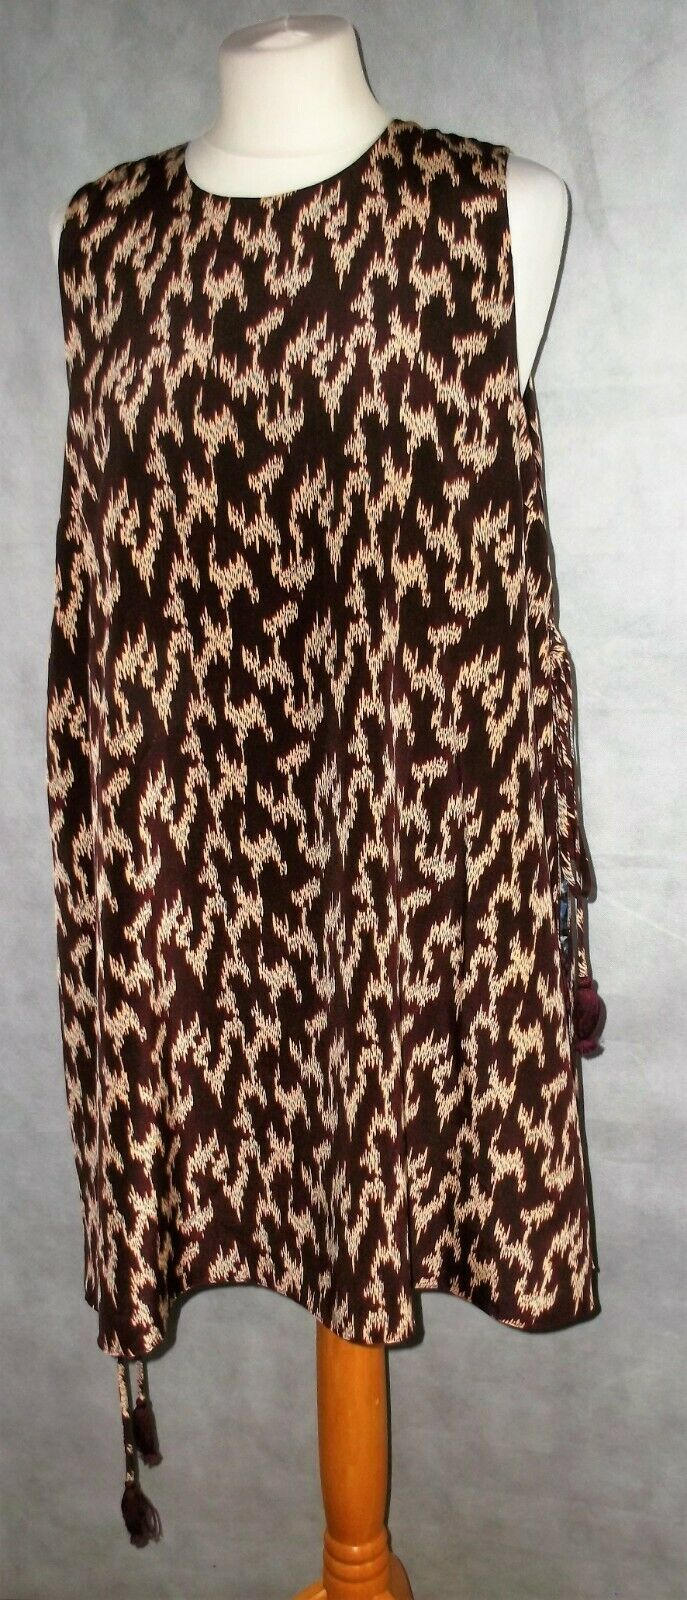 ELIZABETH AND JAMES net a porter silk long double layered top size 12